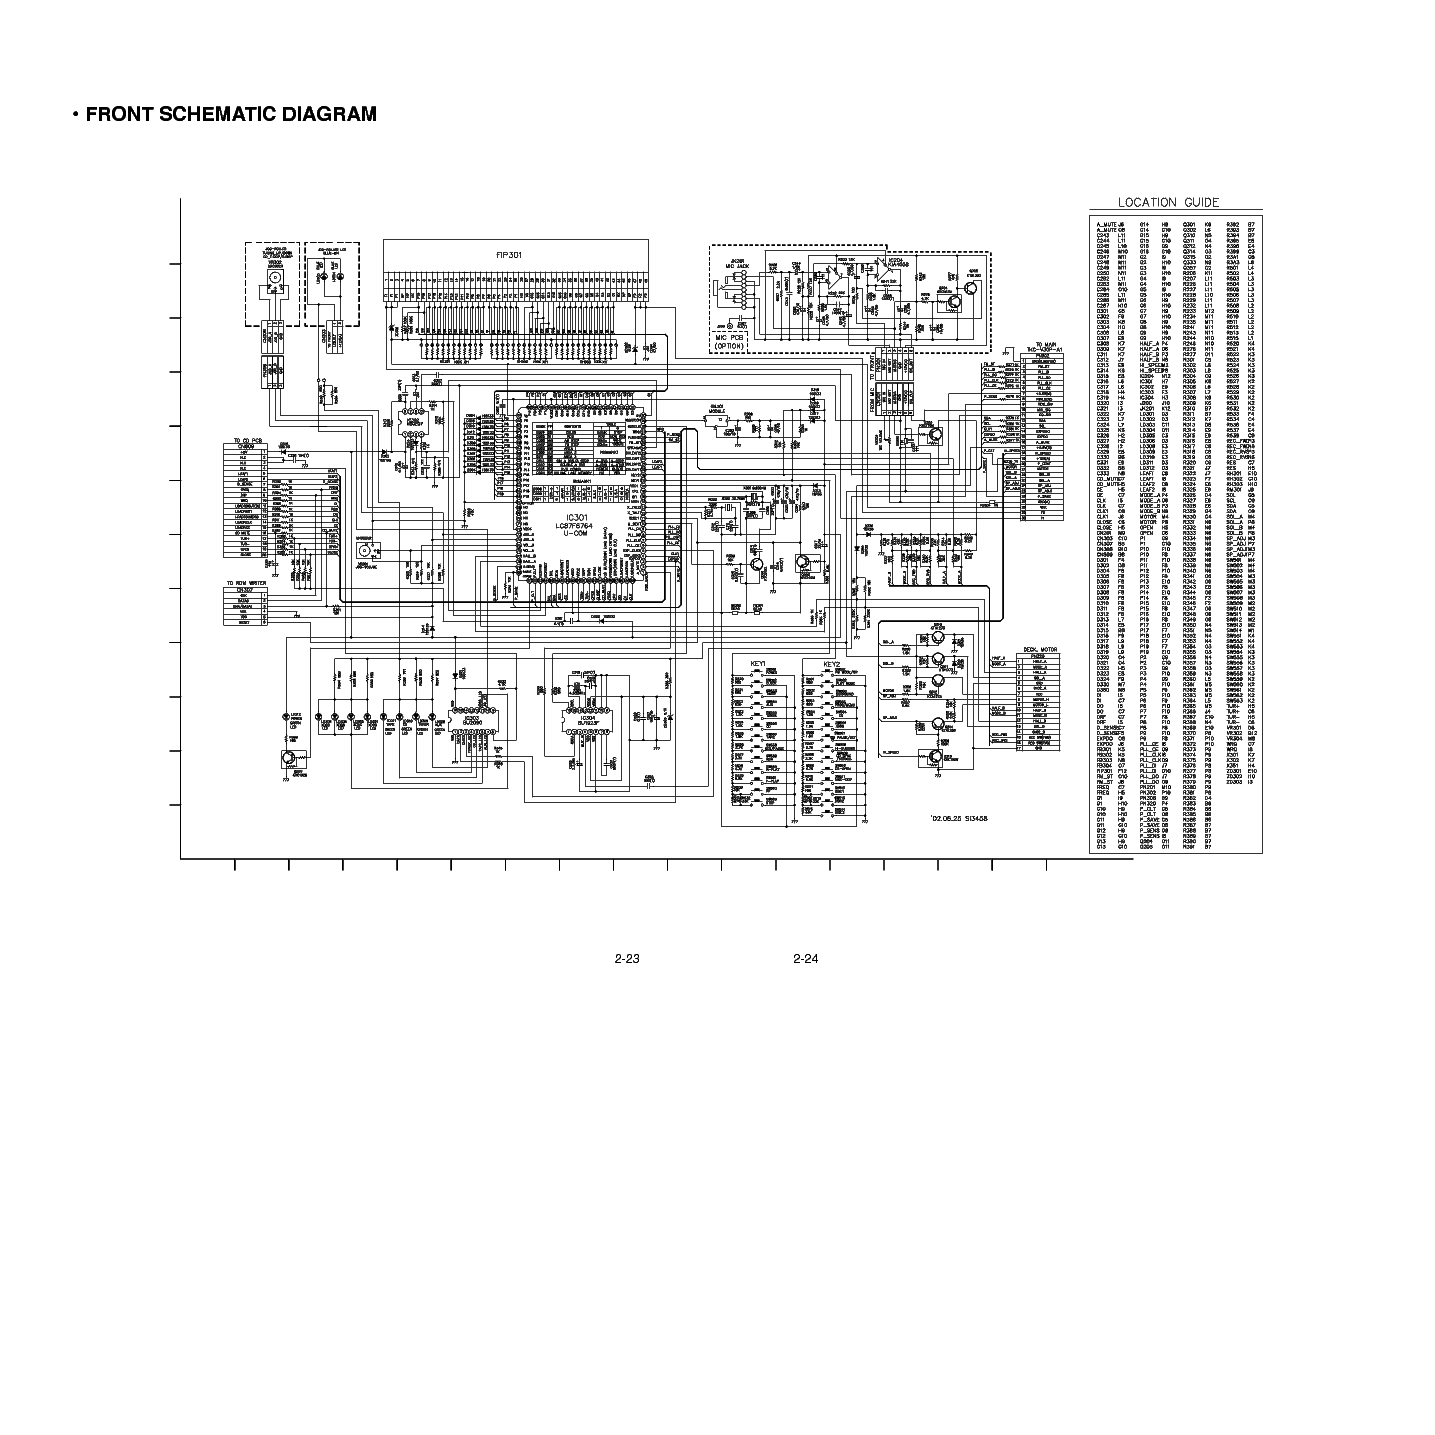 LG FFH-786 SCH Service Manual download, schematics, eeprom